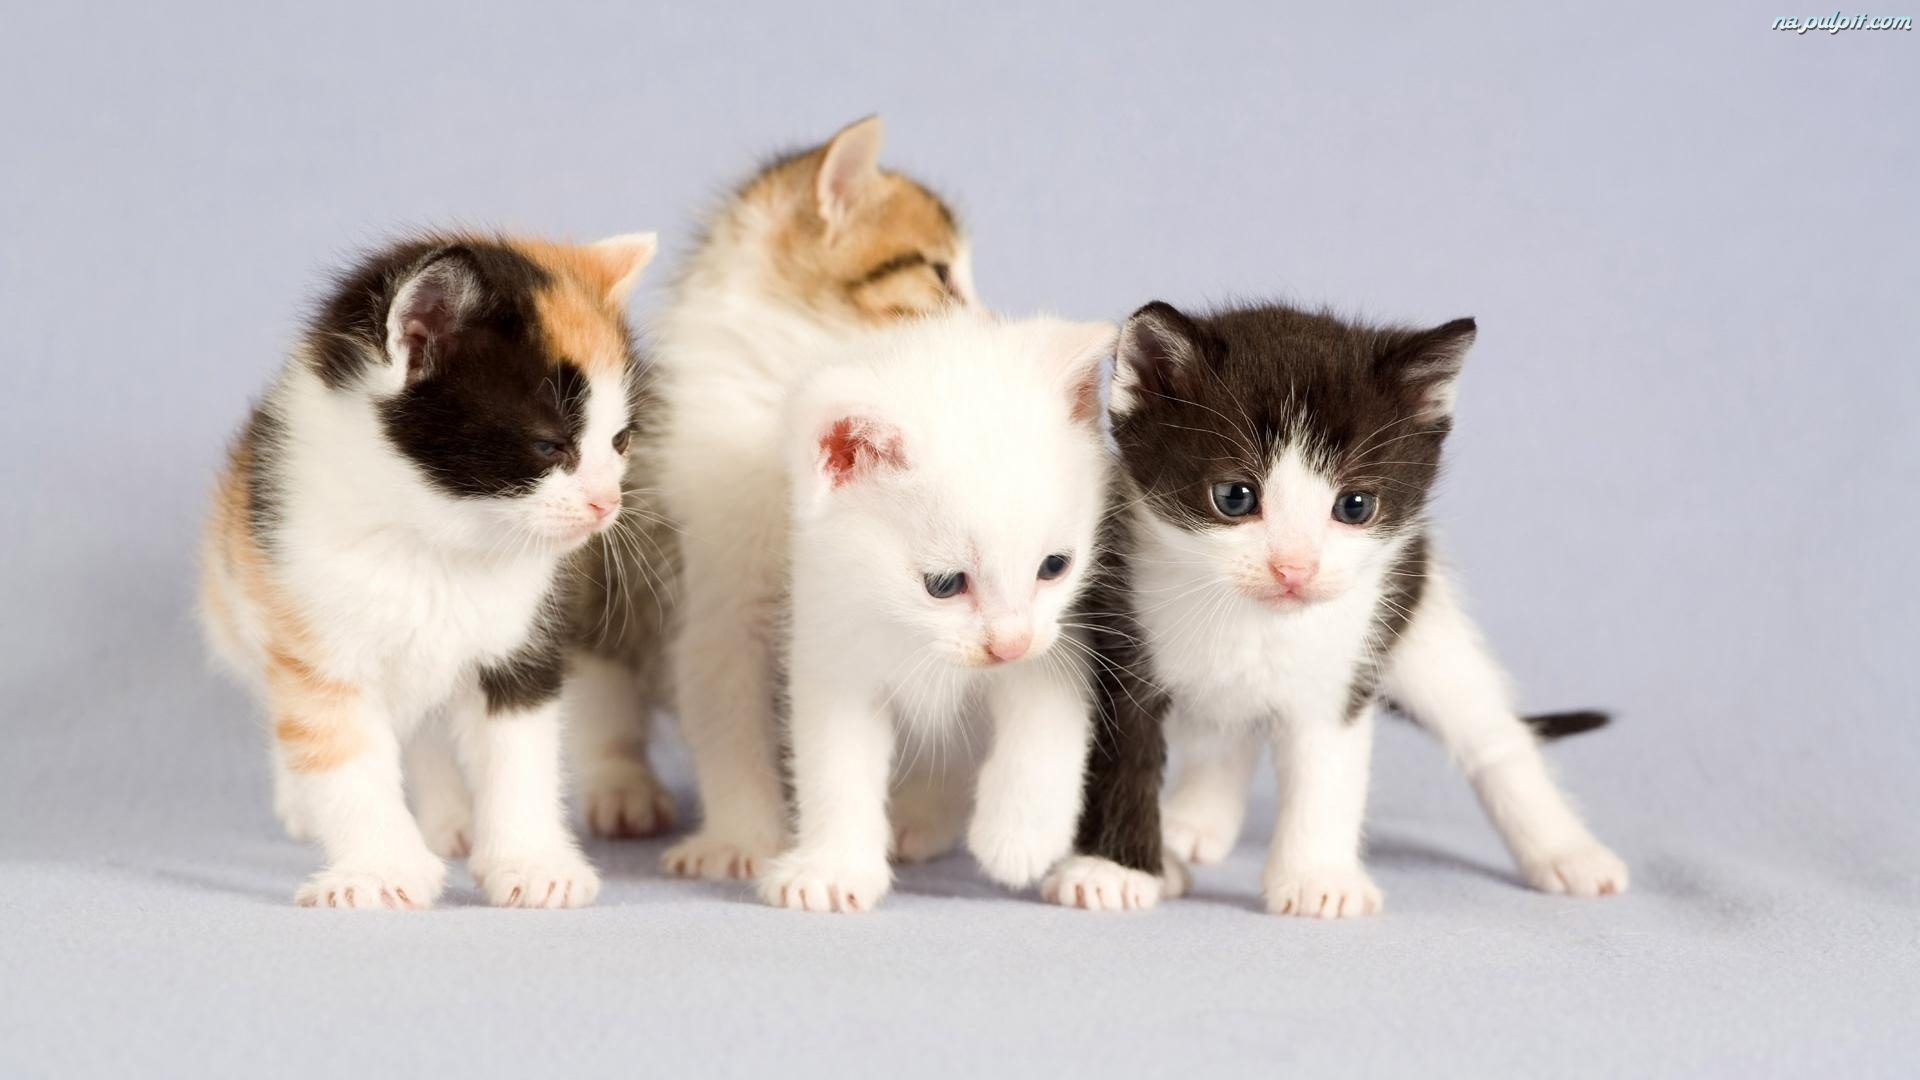 Cztery kotki na pulpit - Cute kittens hd images ...